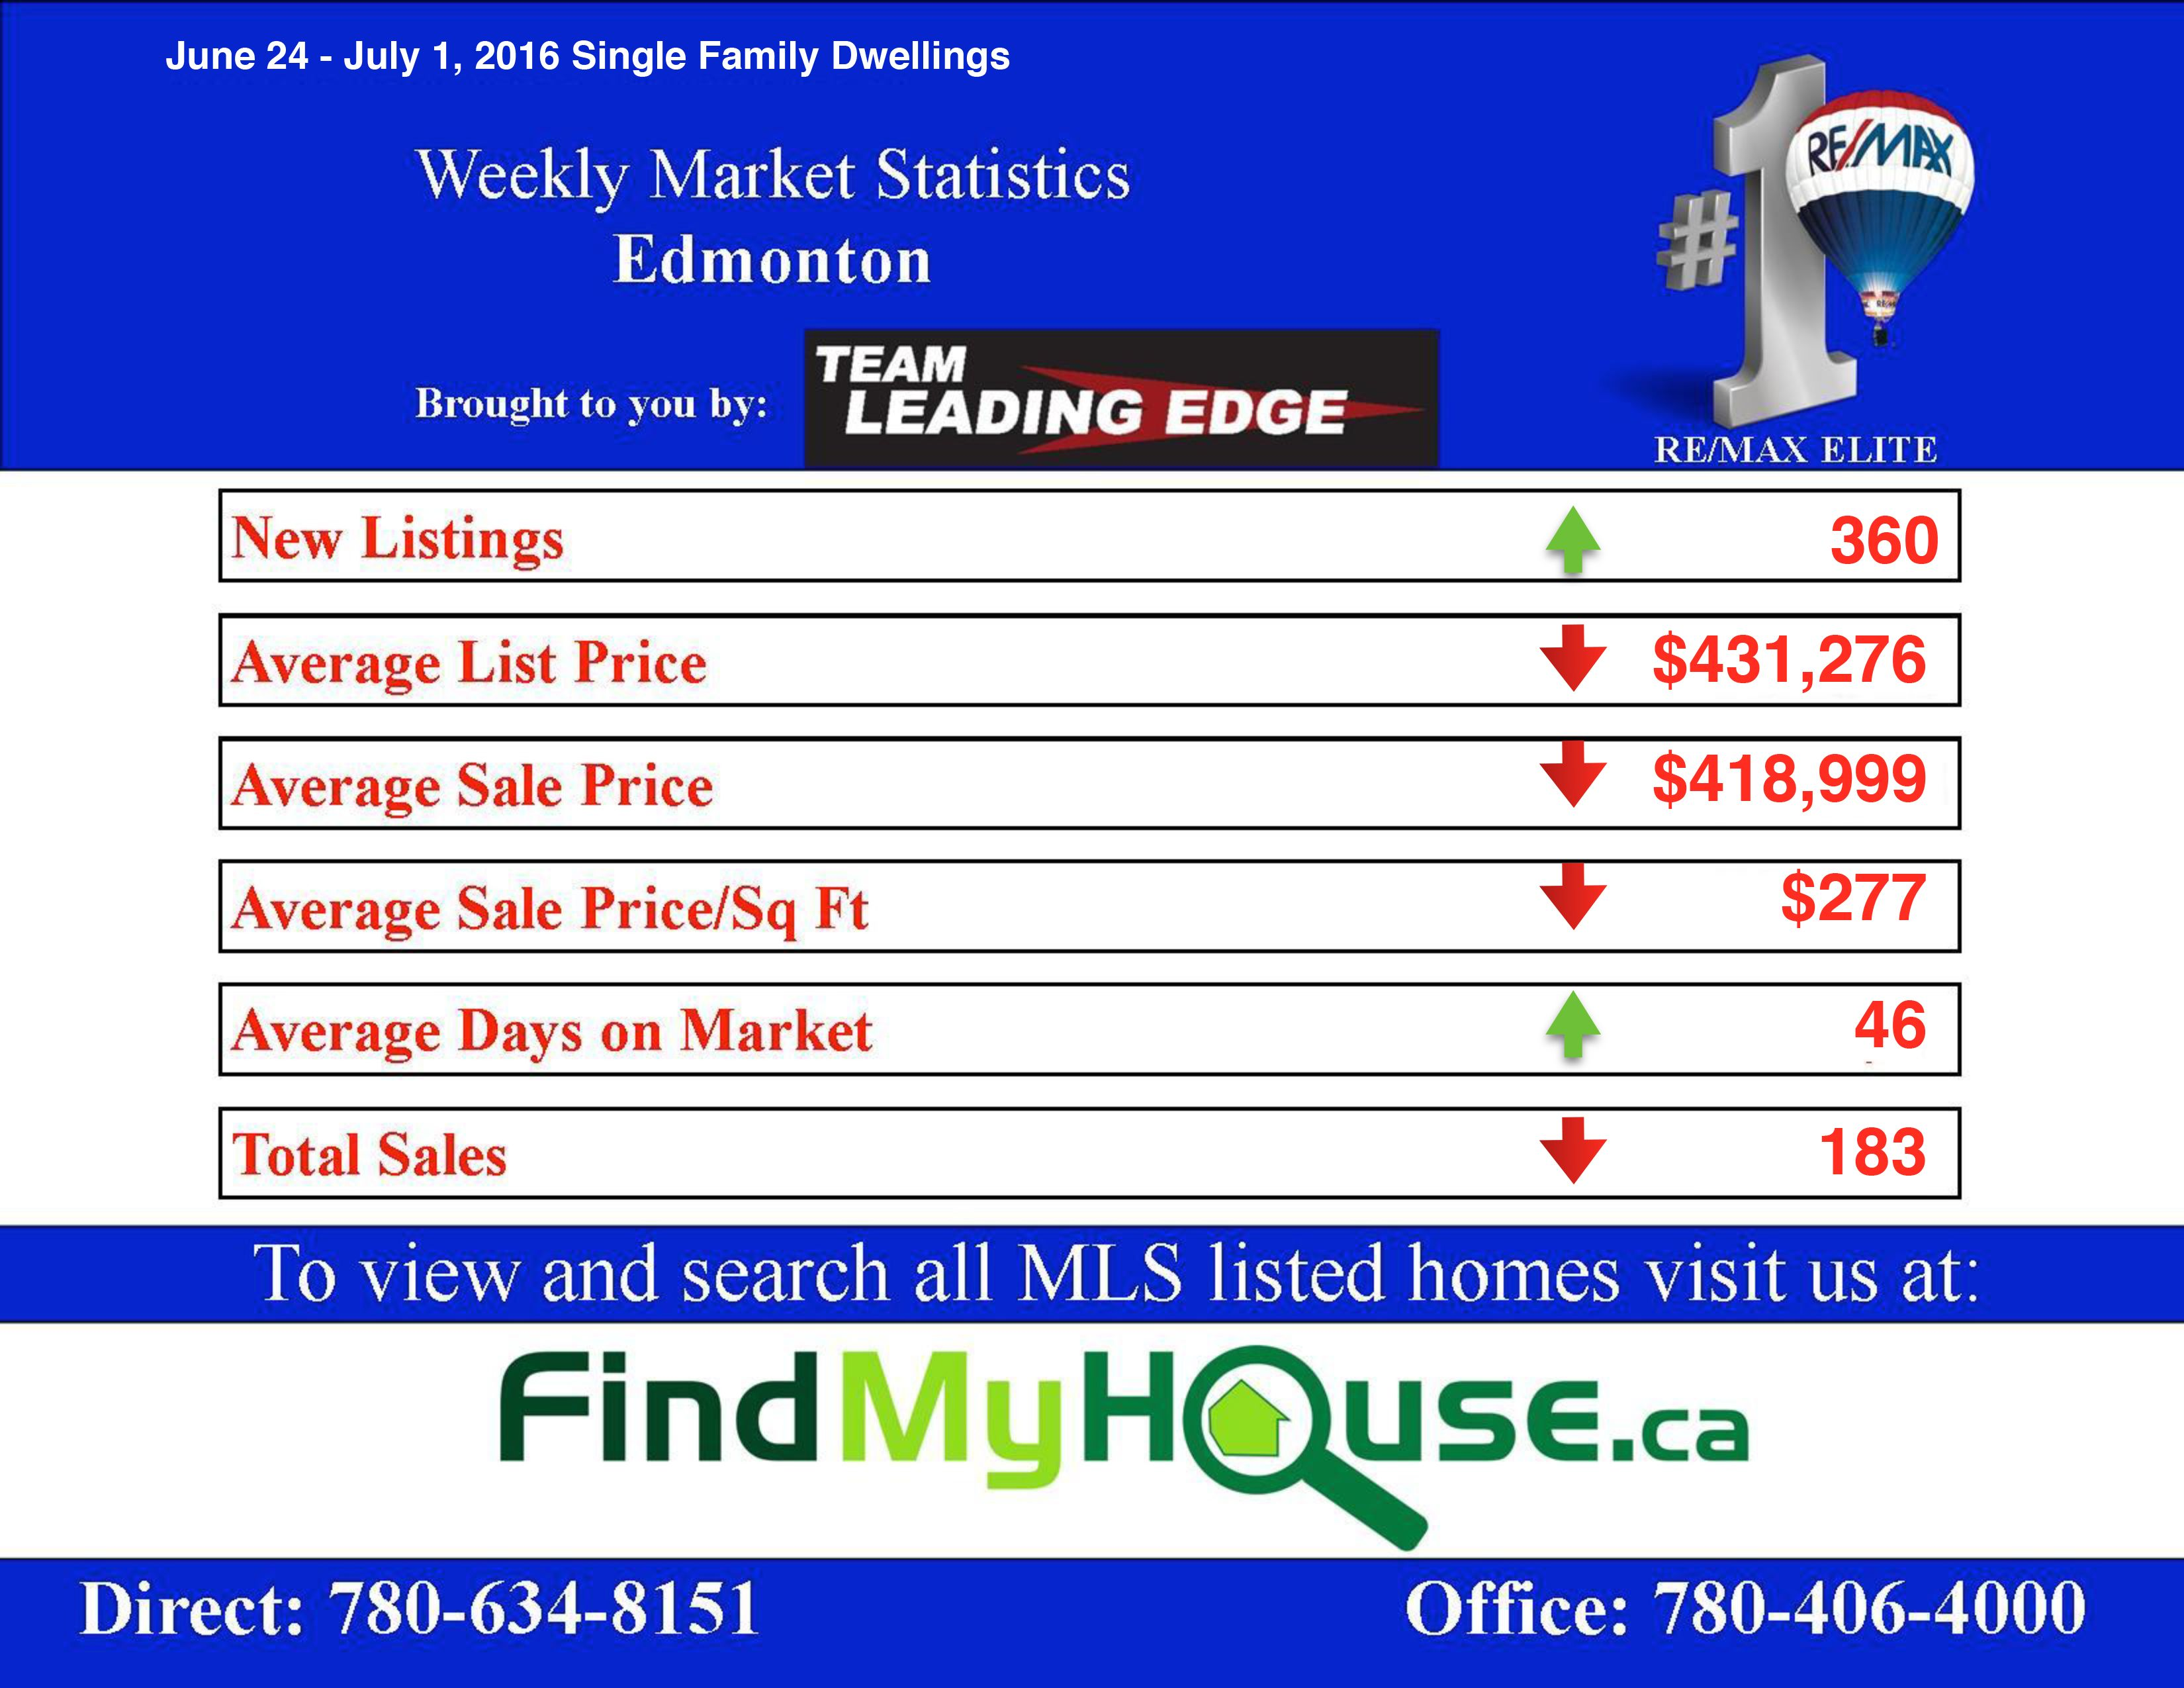 EDMONTON REAL ESTATE MARKET UPDATE JUNE 24 - JULY 1 2016